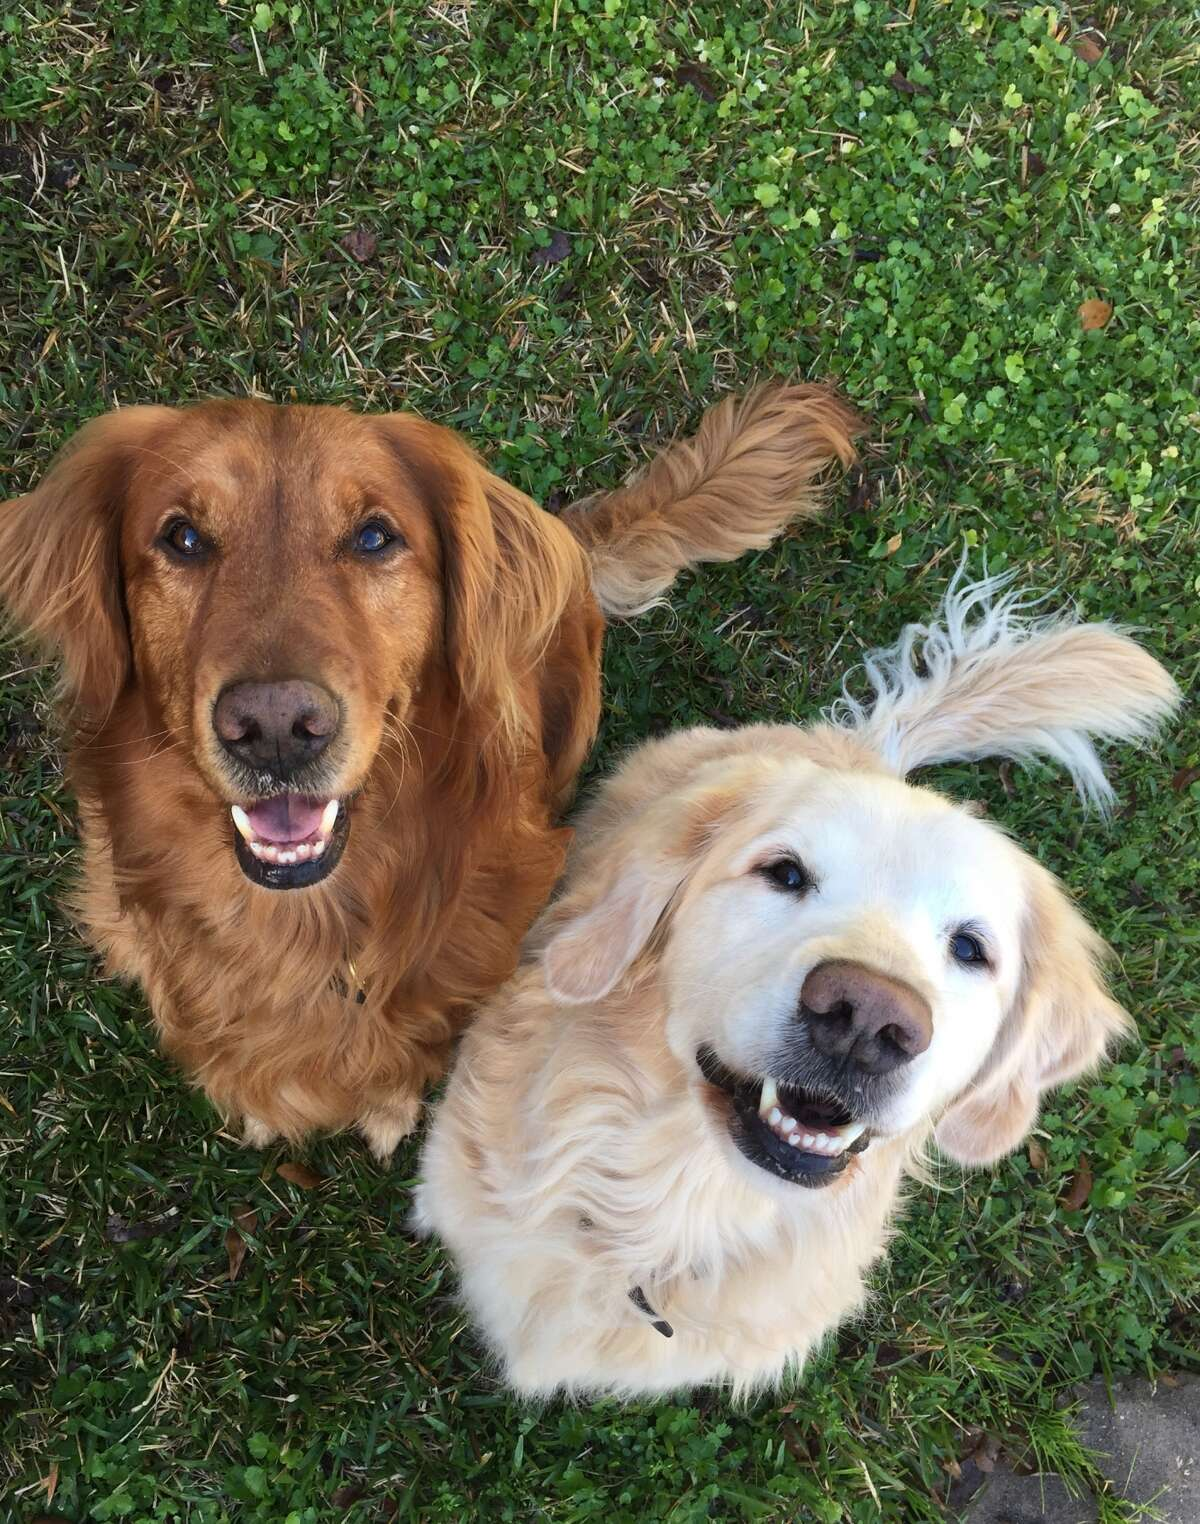 Golden retrievers Goose, left, and Butters are mascots for Apartment Butler, a mobile app that enables residents to book dog walkers and other services at their apartments. The service is used at 40 communities and will be expanding after raising $750,000 in seed funding, with more than 90 percent of it coming from investors from the apartment industry.